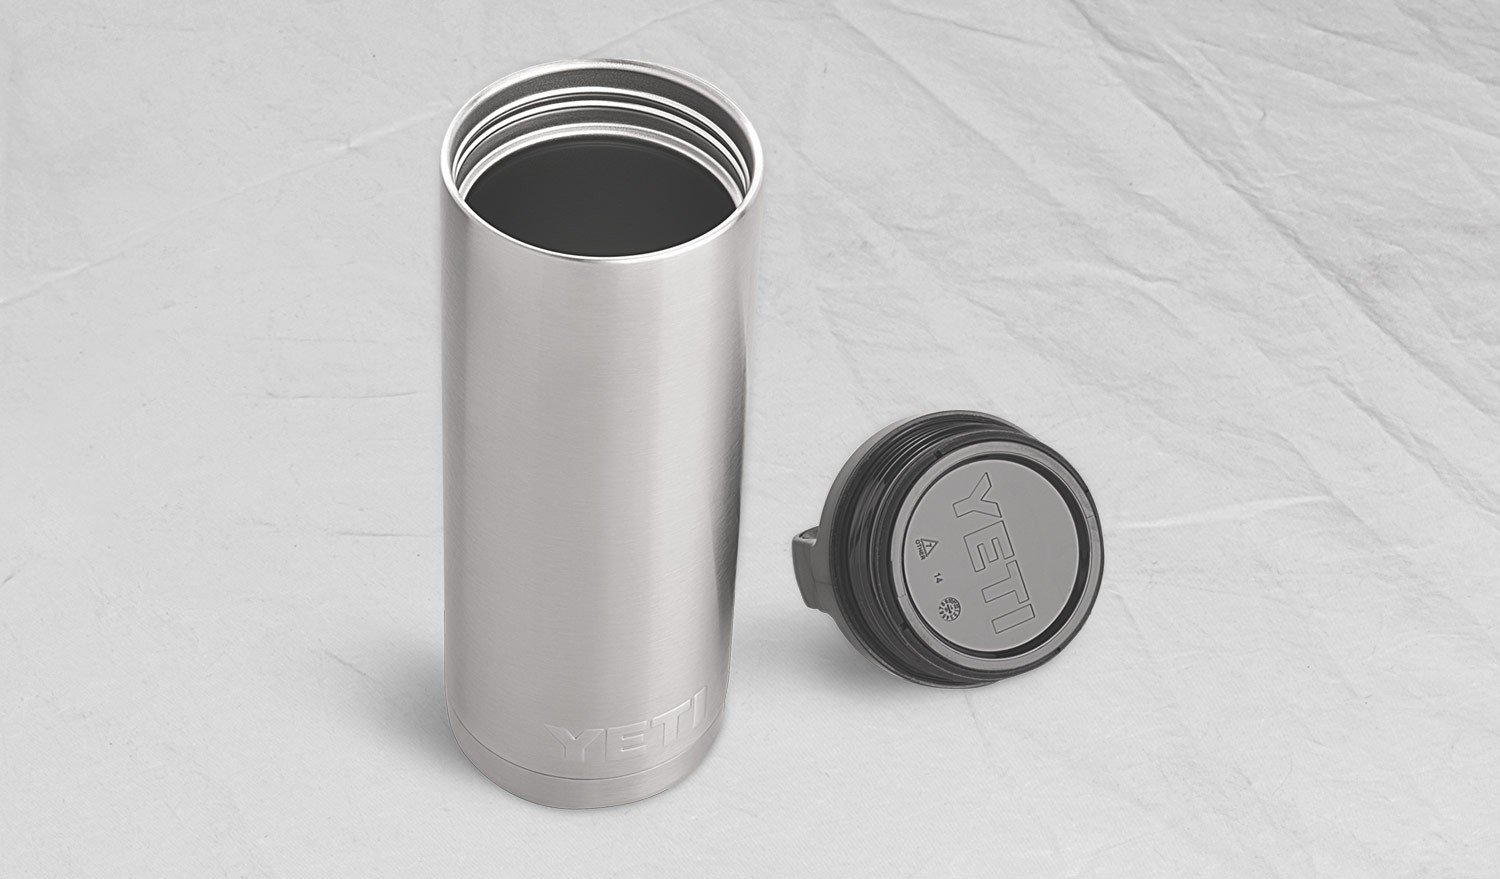 YETI Rambler 18 oz Stainless Steel Vacuum Insulated Bottle with Cap by YETI (Image #4)